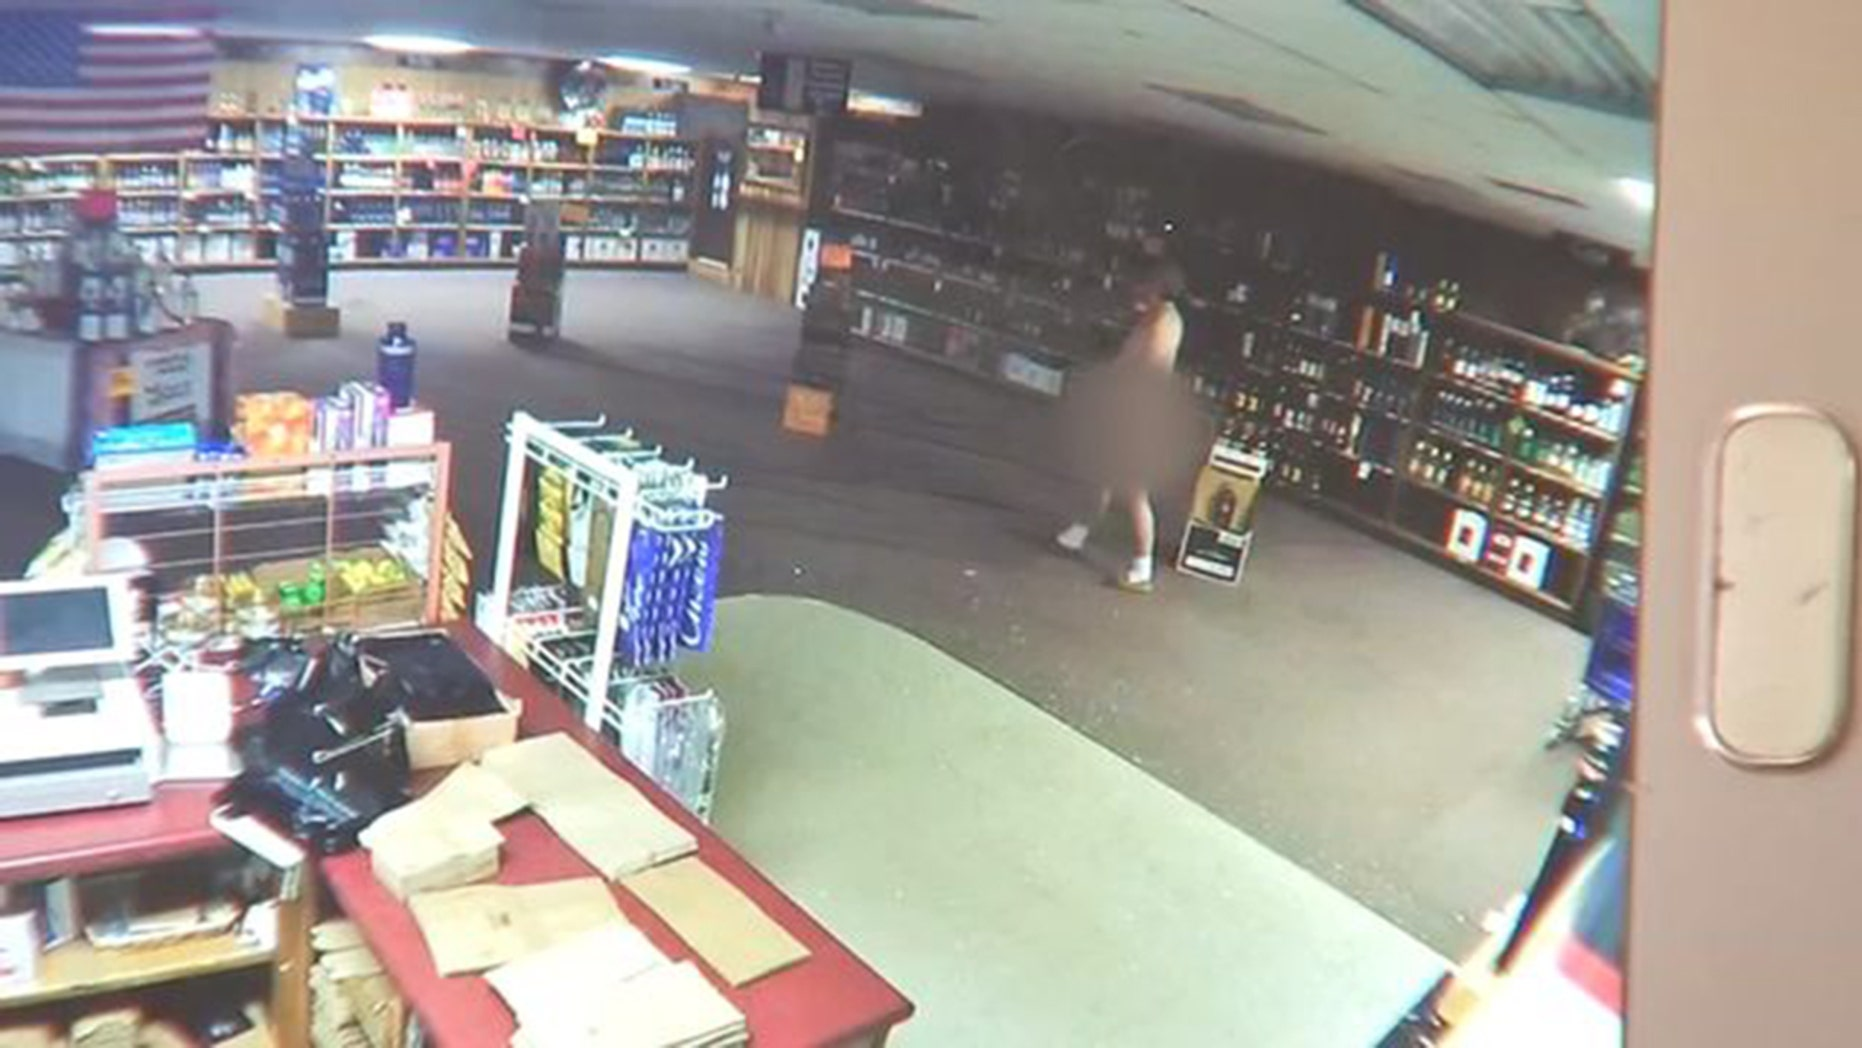 A naked man in Georgia used a hammer to break into a liquor store, but only stole a single Coke.